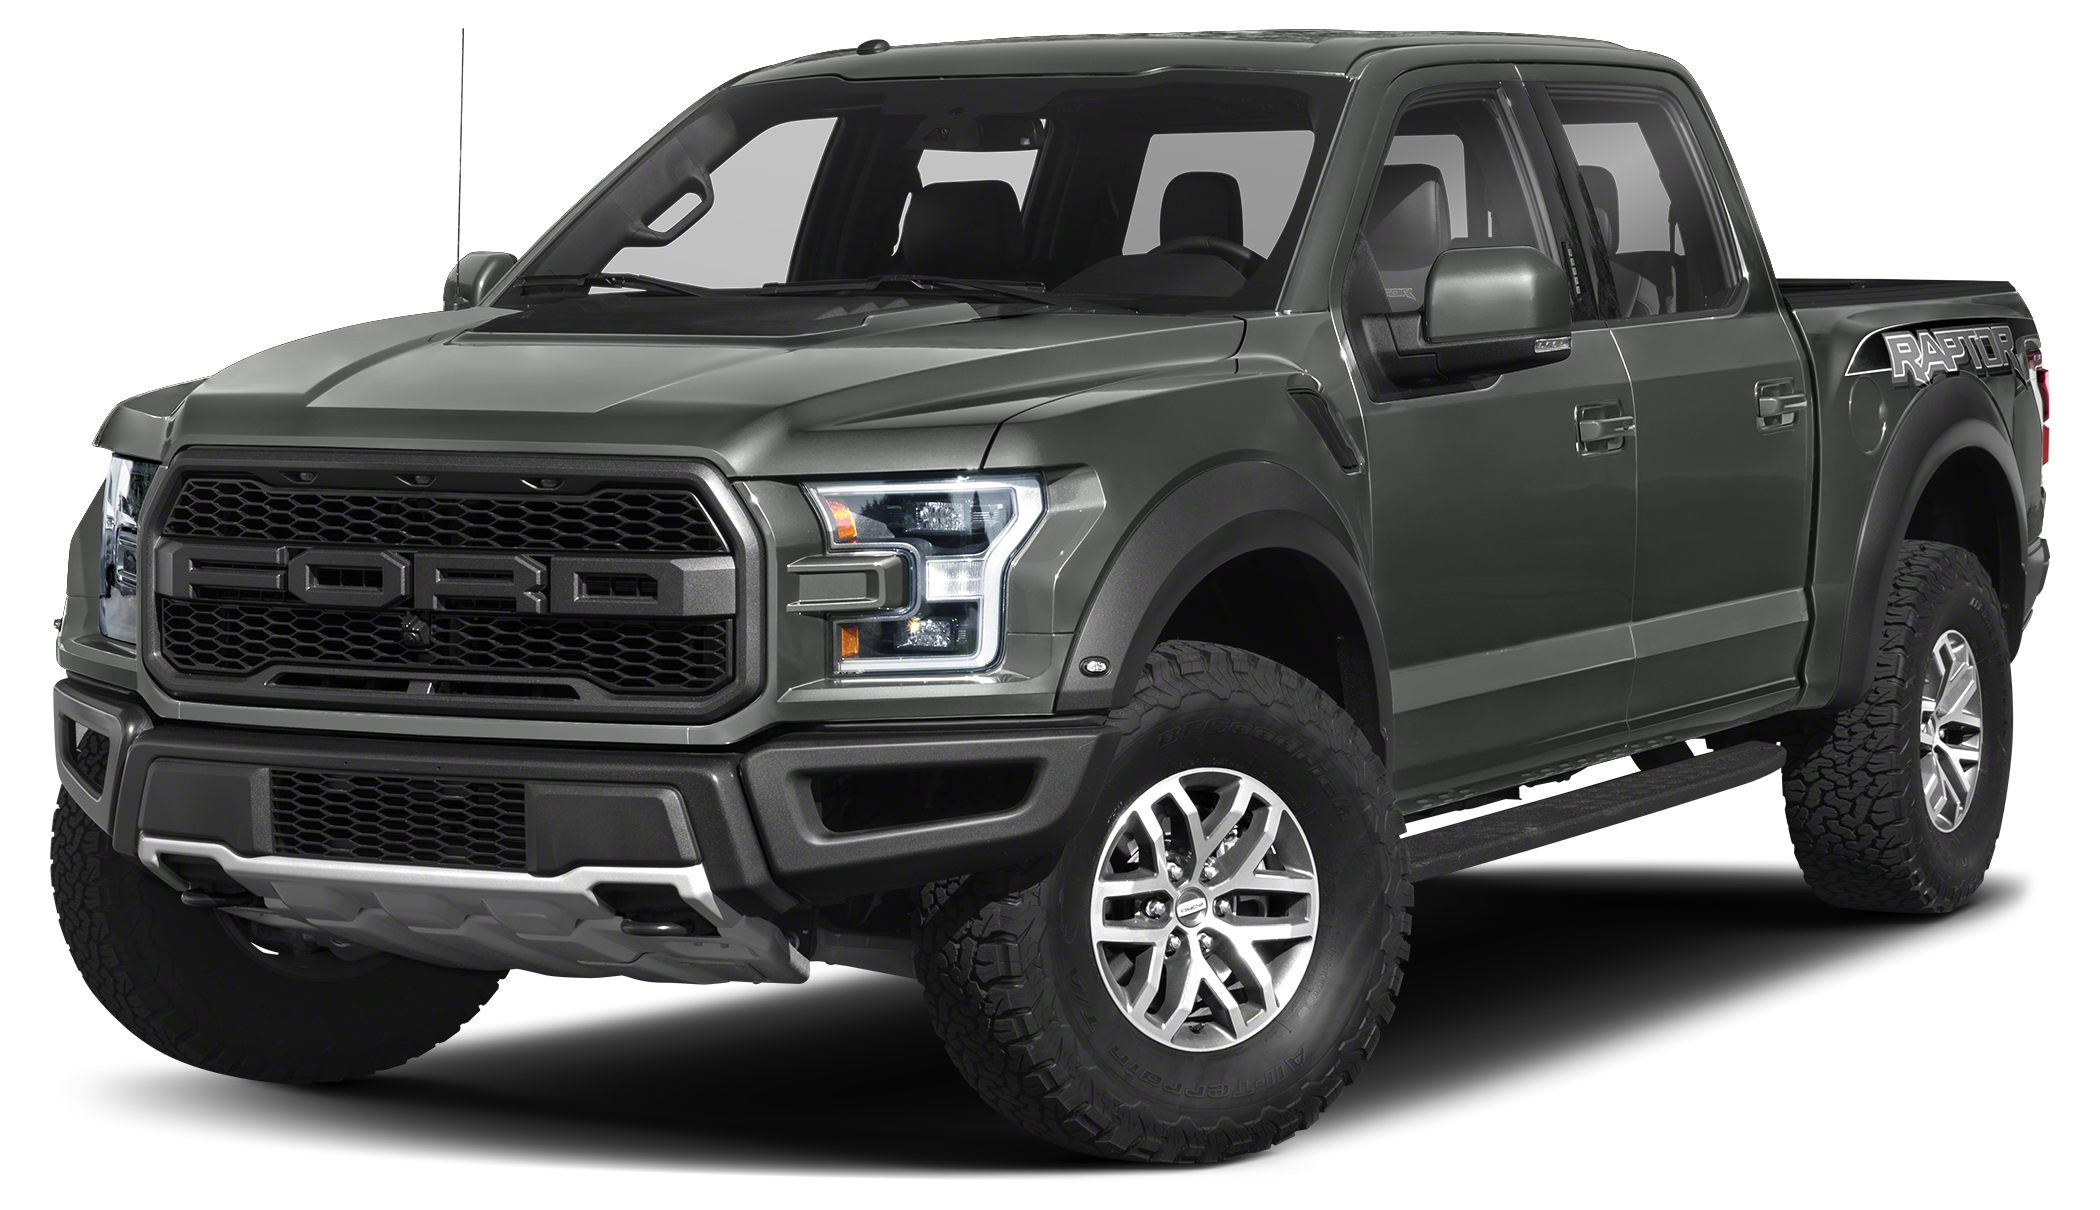 2018 Ford F-150 Raptor The 2018 F-150 body is up to 700 lbs lighter than the previous generation